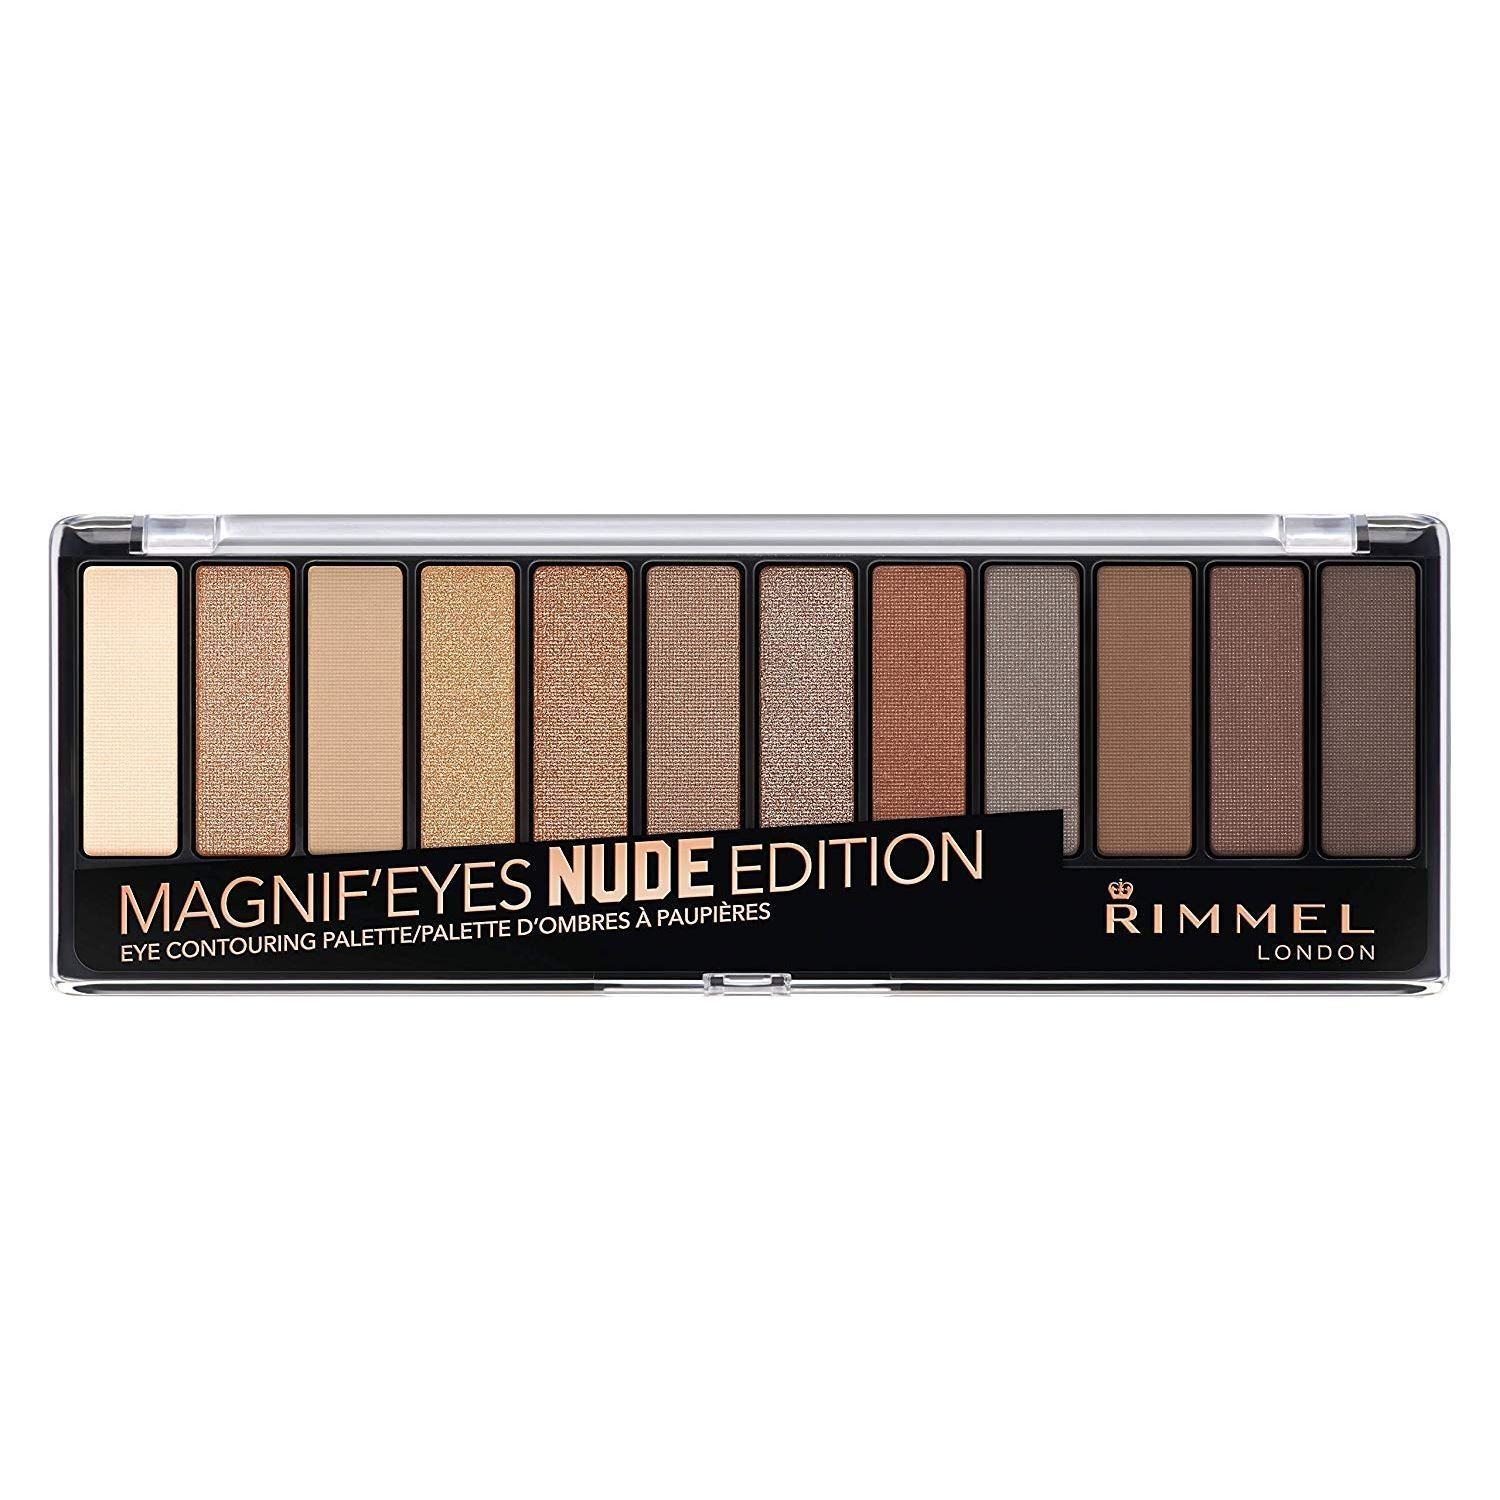 Magnif'Eyes Eye Palette - Nude Edition